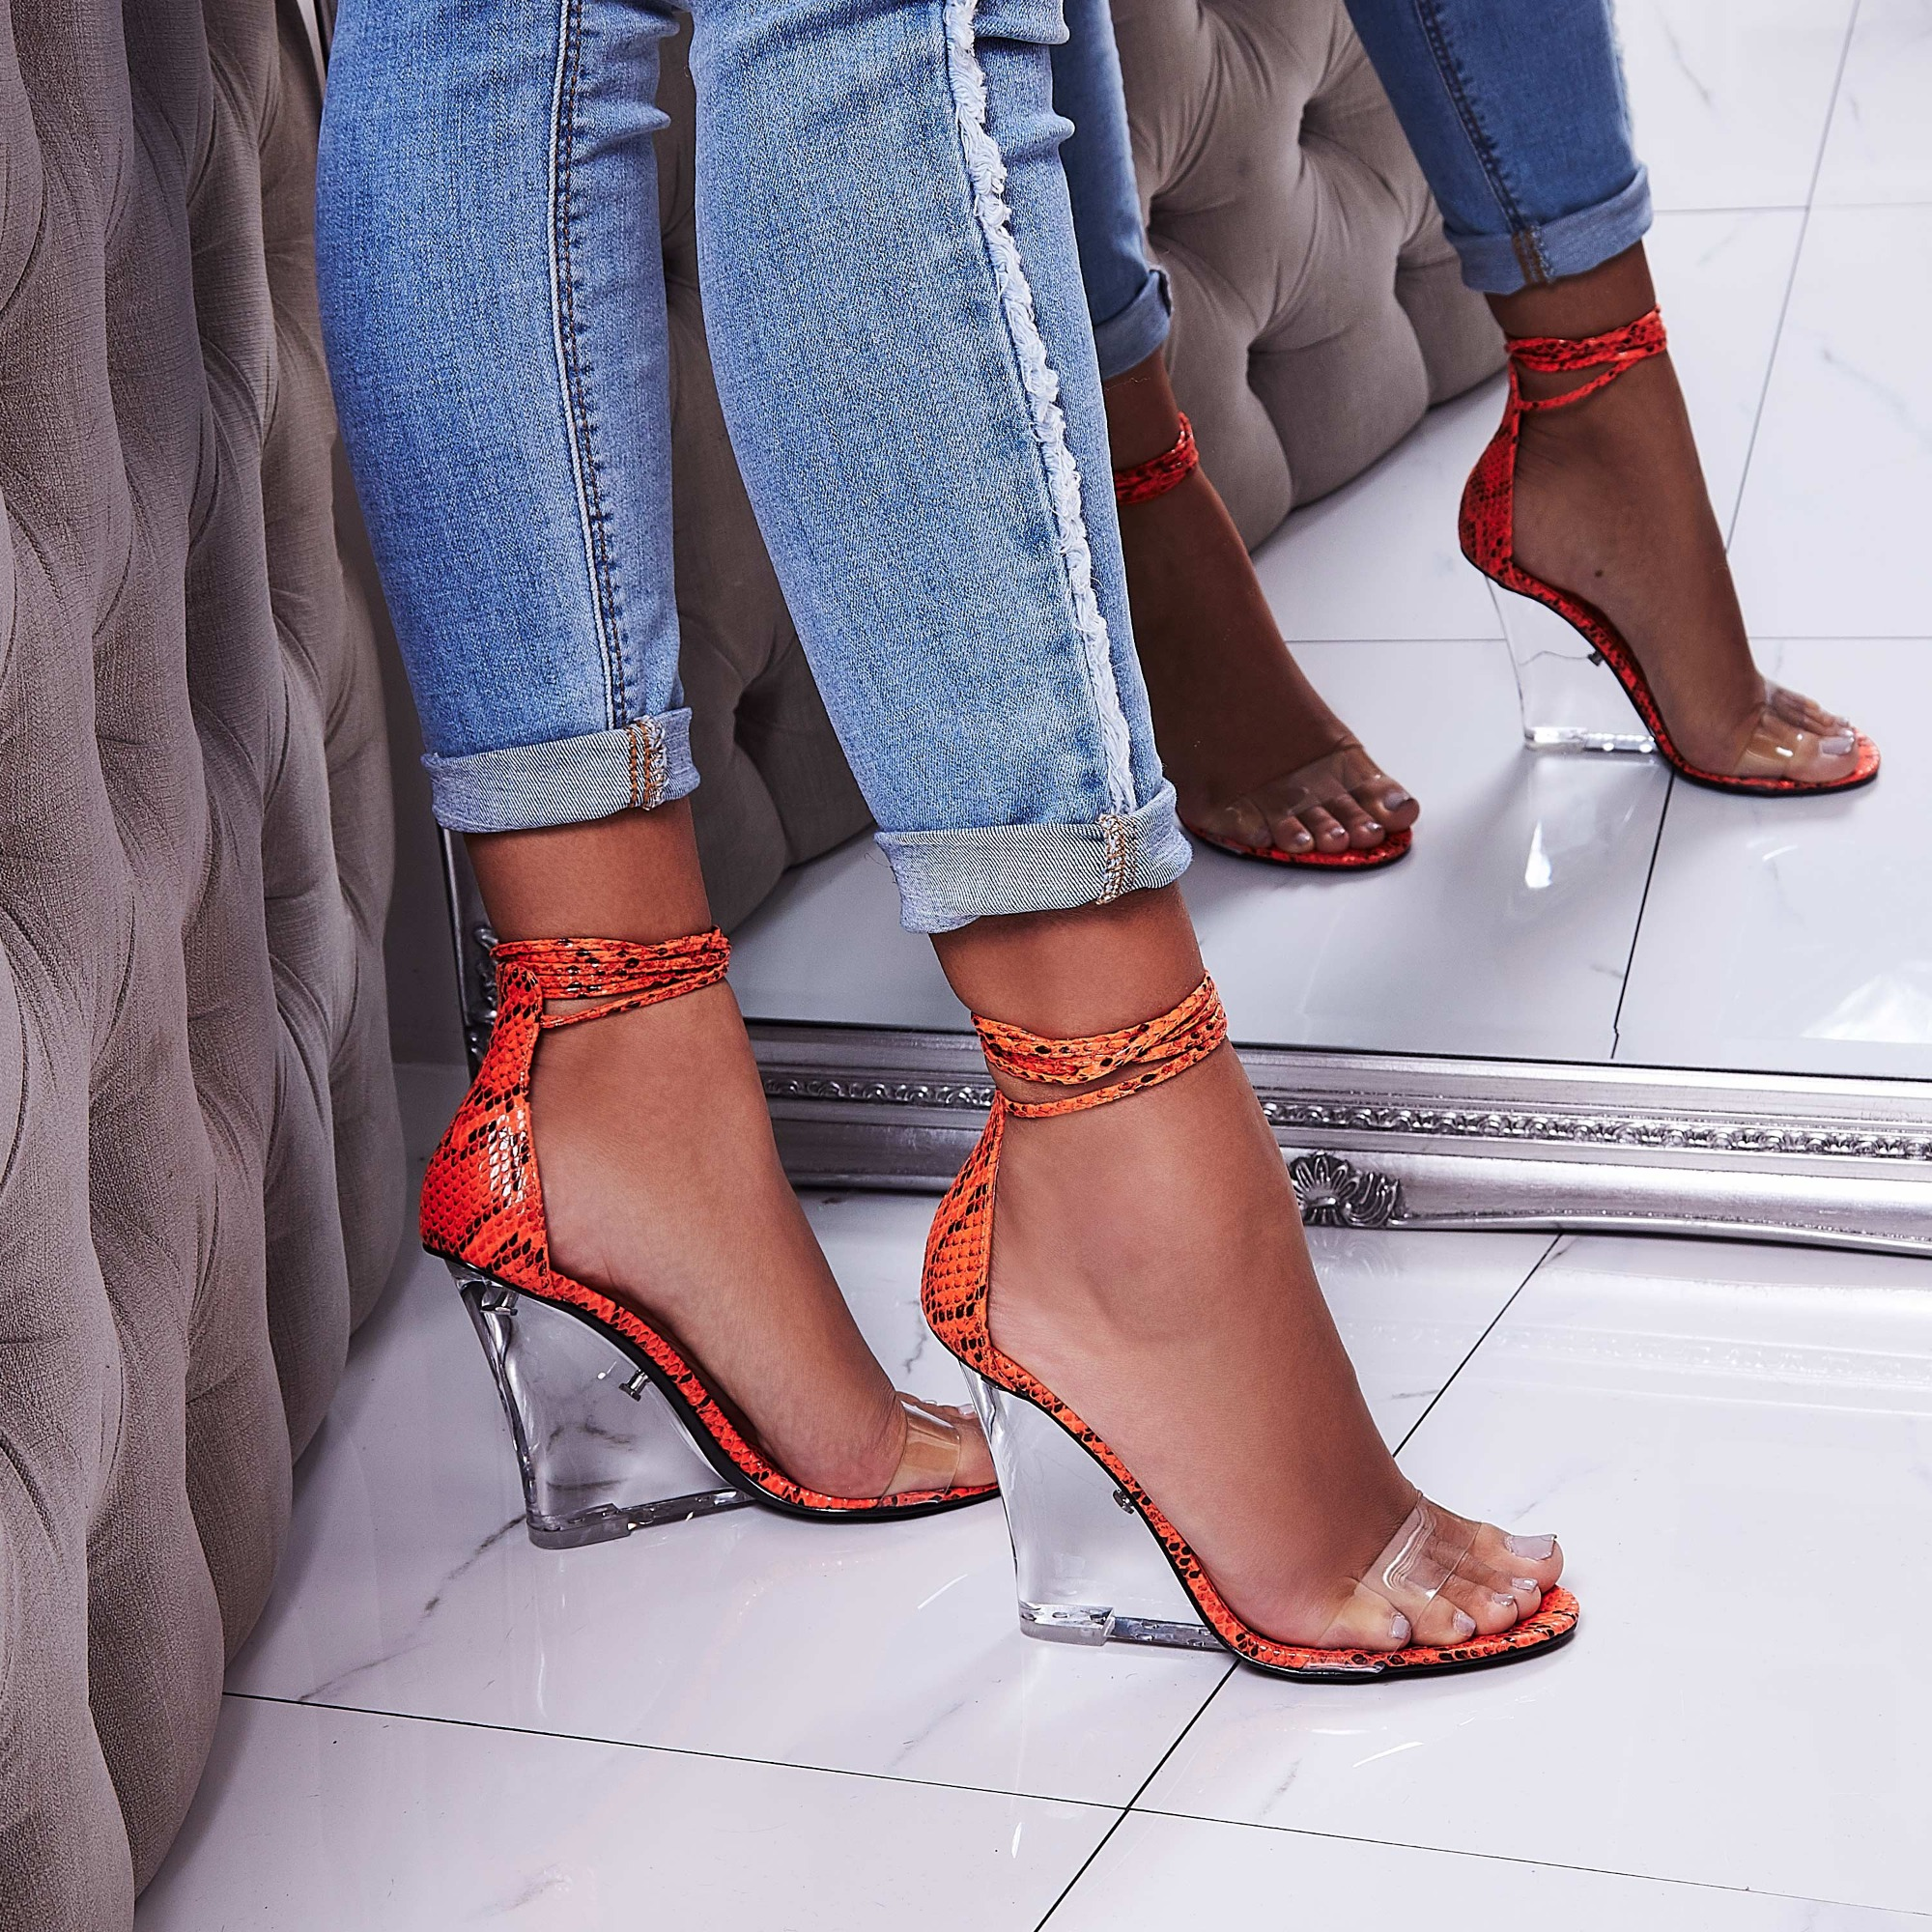 Magnetic Lace Up Perspex Wedge Heel In Orange Snake Print Faux Leather